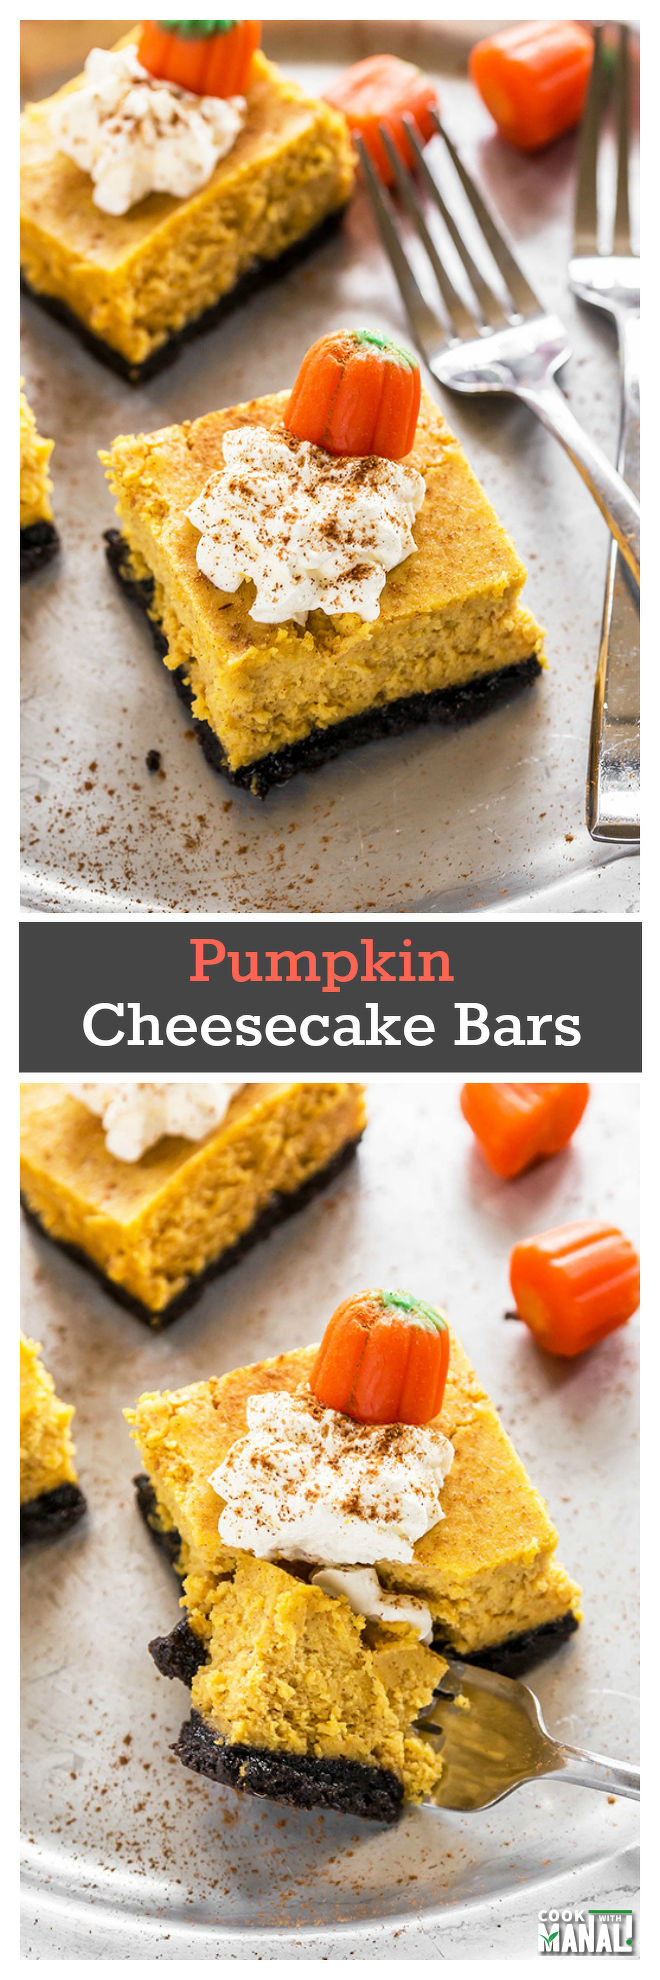 pumpkin-cheesecake-bars-collage